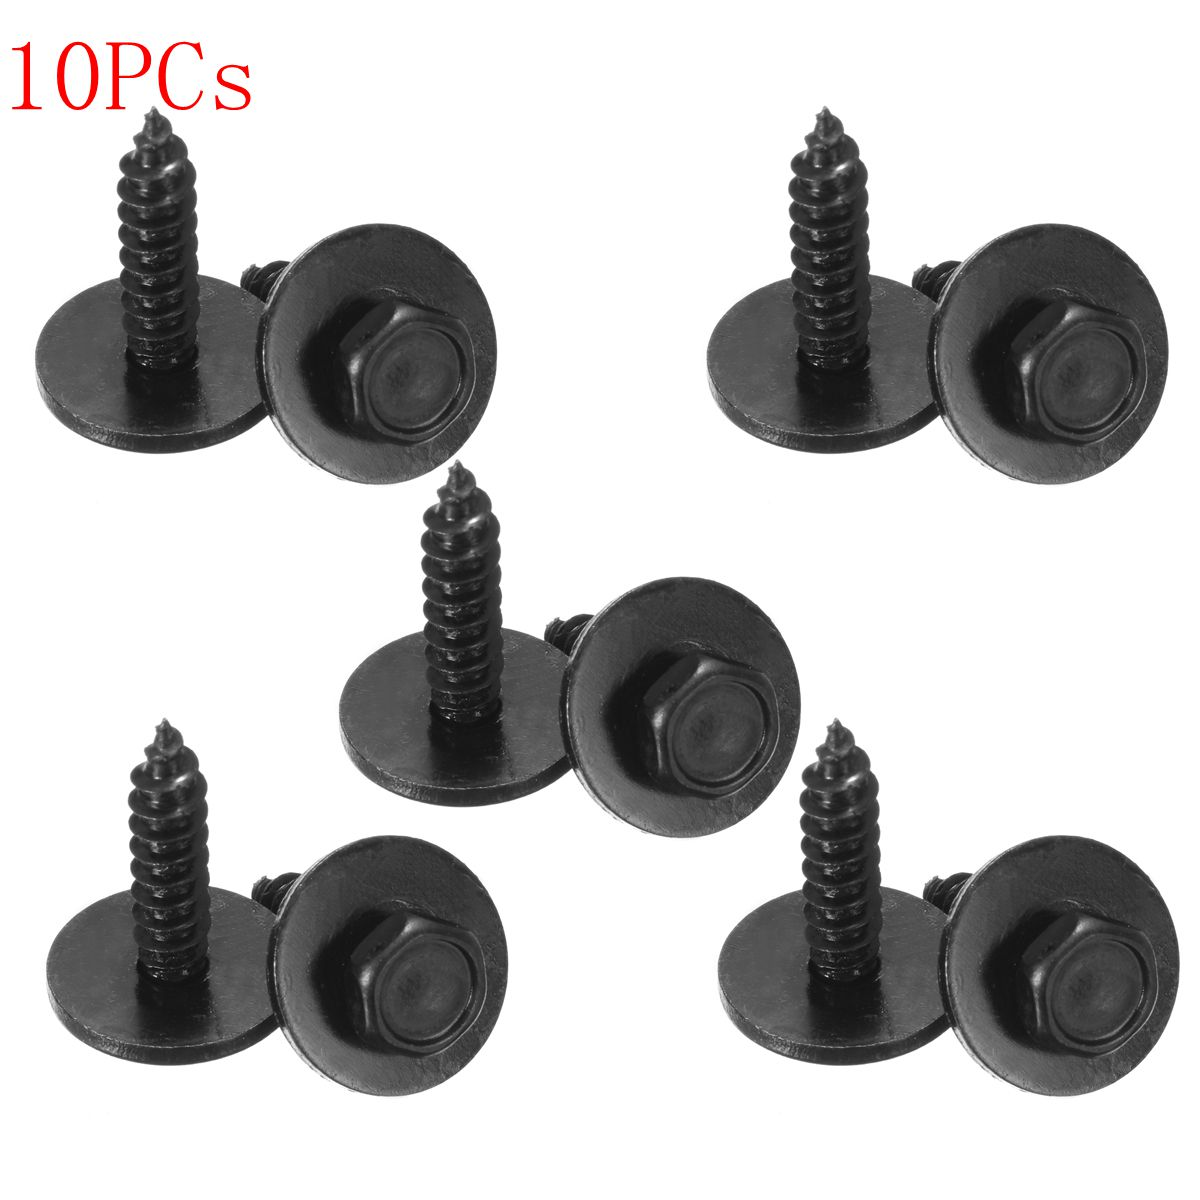 10PCs Universal Self Tapping Screw & Washers 4.8 x 19 mm Black 8mm Hex Head For BMW car rear wing trunk lip spoiler for suzuki vitara 2016 2017 2018 accessories styling